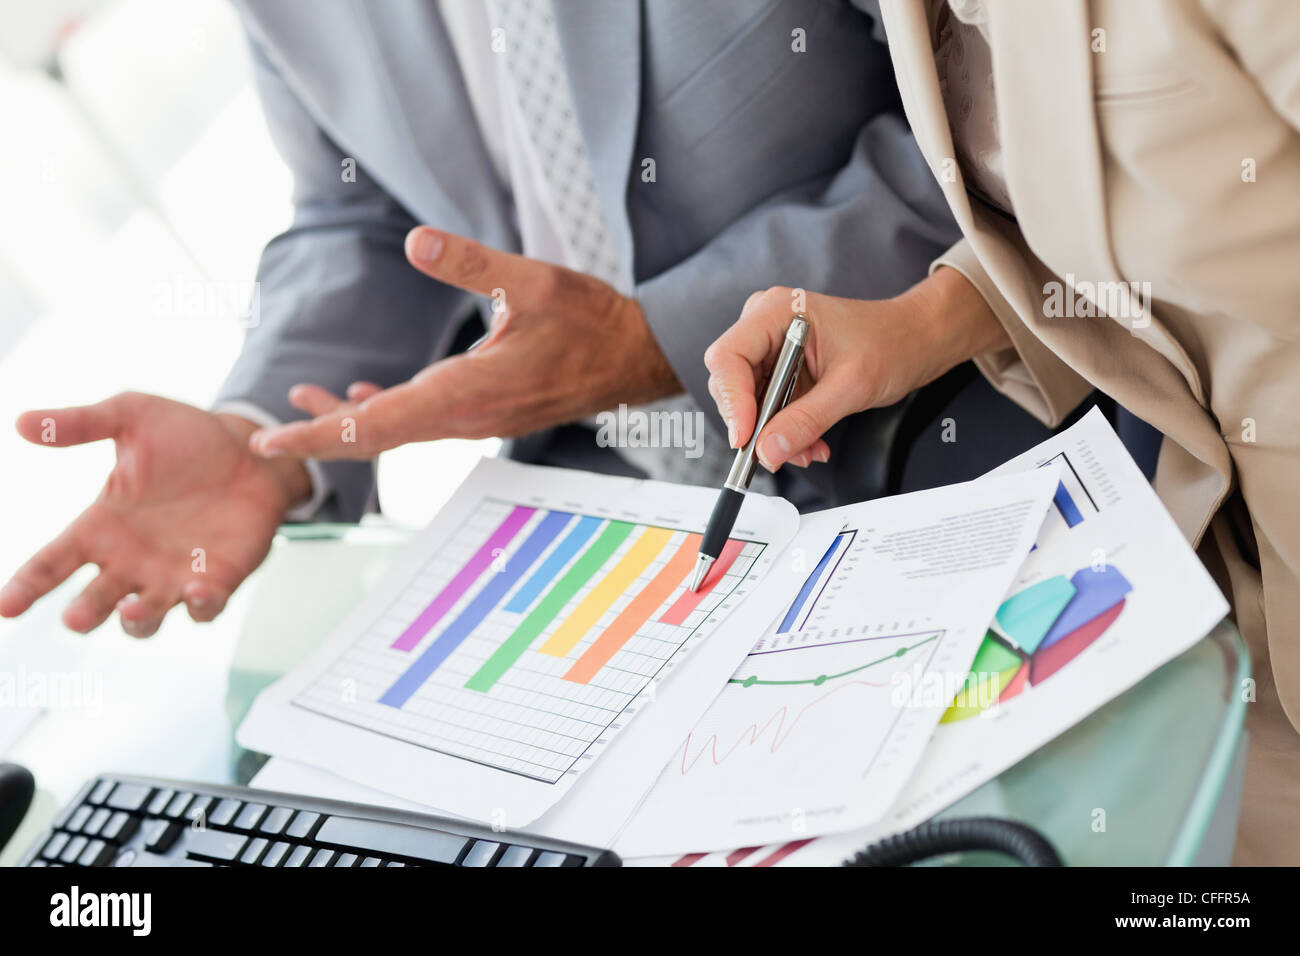 Business people working on statistics - Stock Image